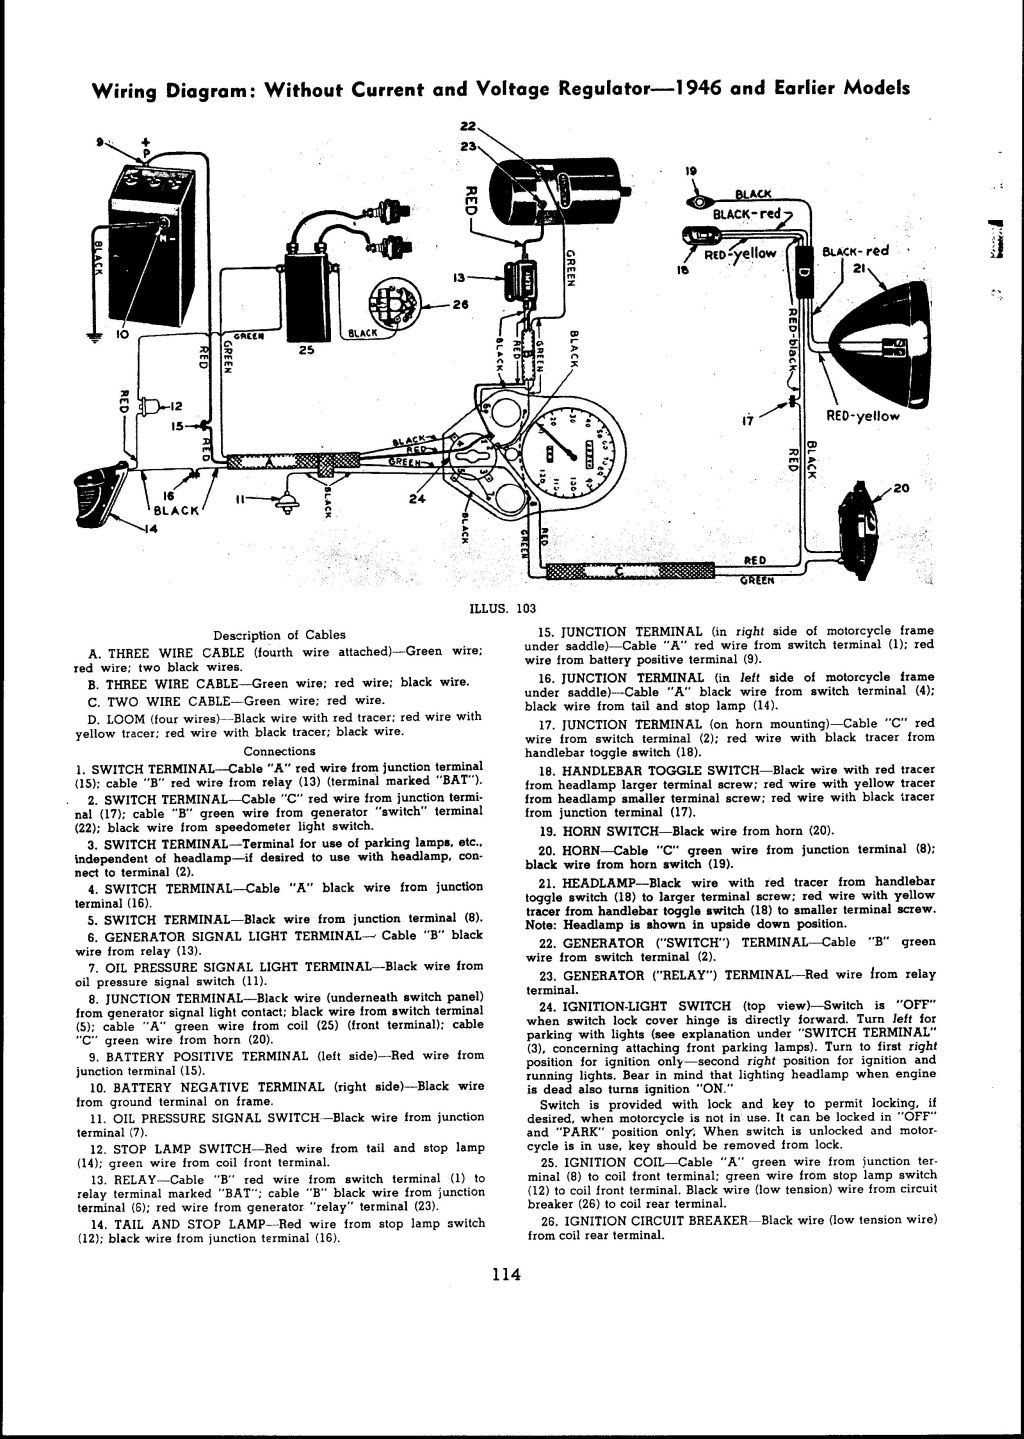 Hd Wiring Diagrams Free Diagram For You Toyota Tacoma Ignition 1941 Harley Davidson Wl Restoration Re The Module